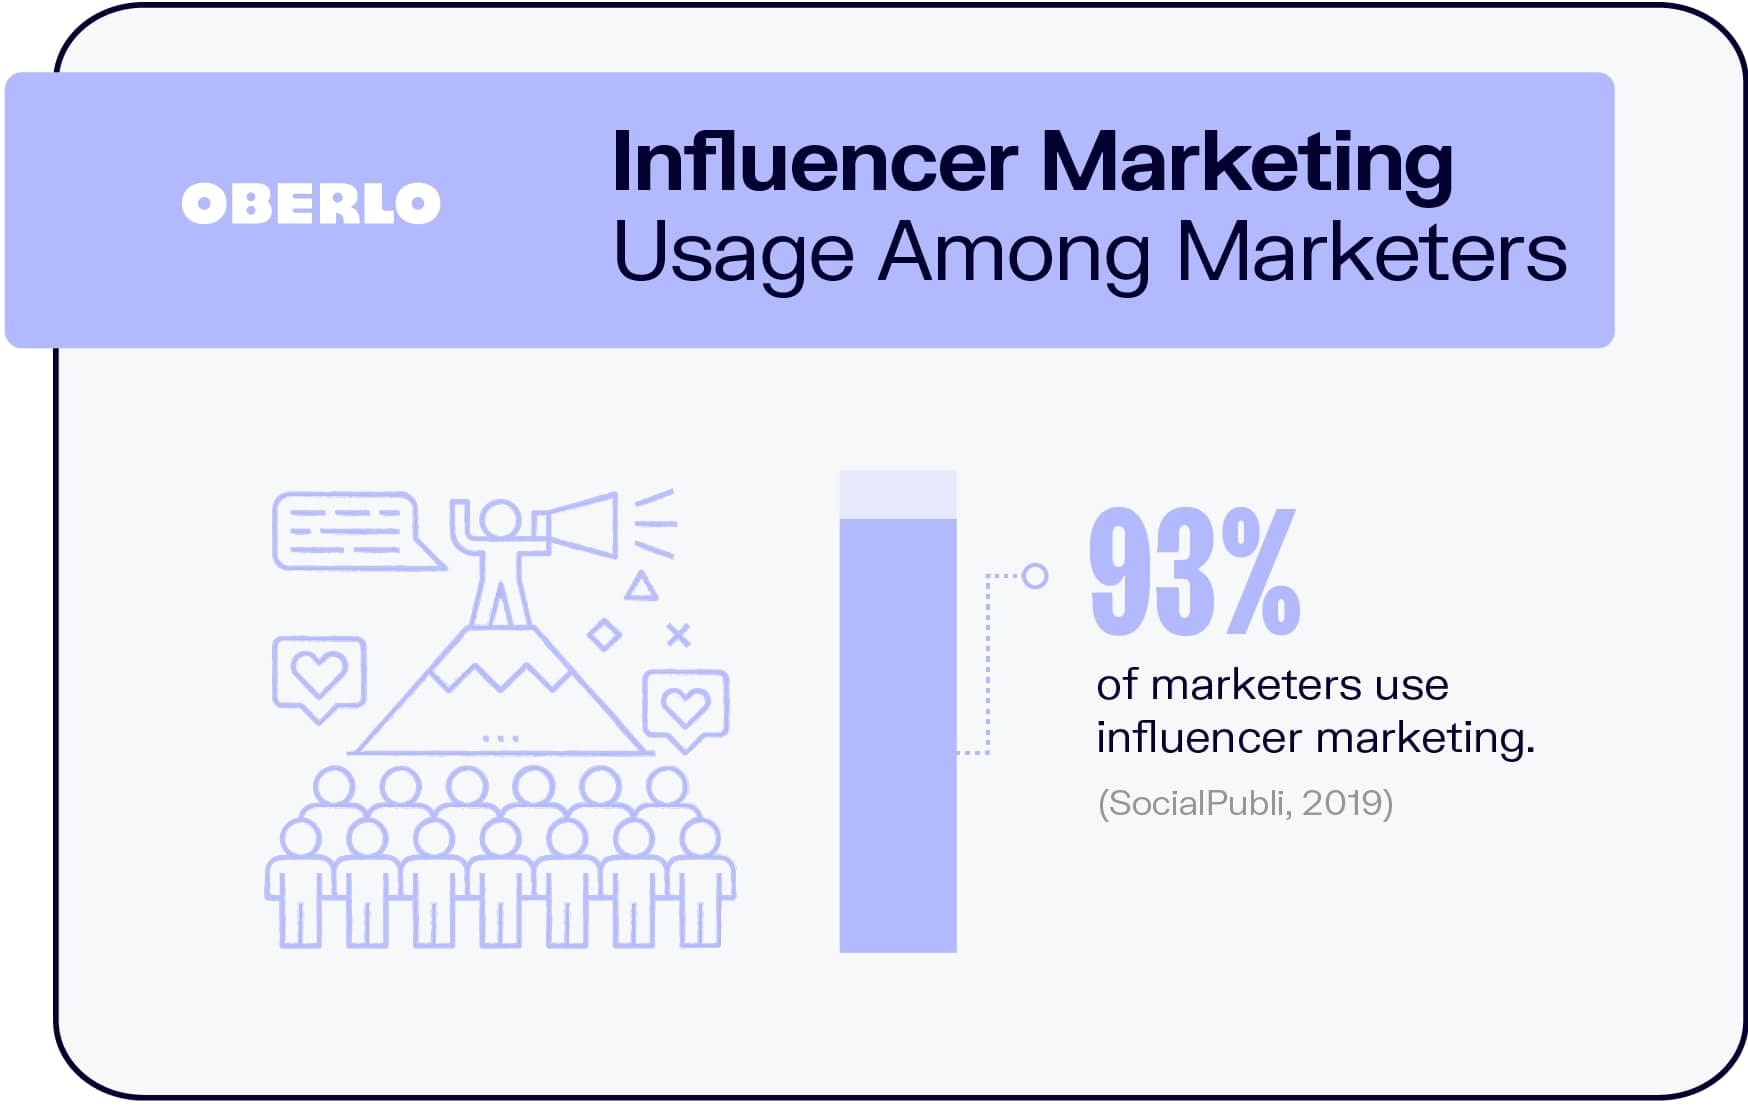 Influencer Marketing Usage Among Marketers